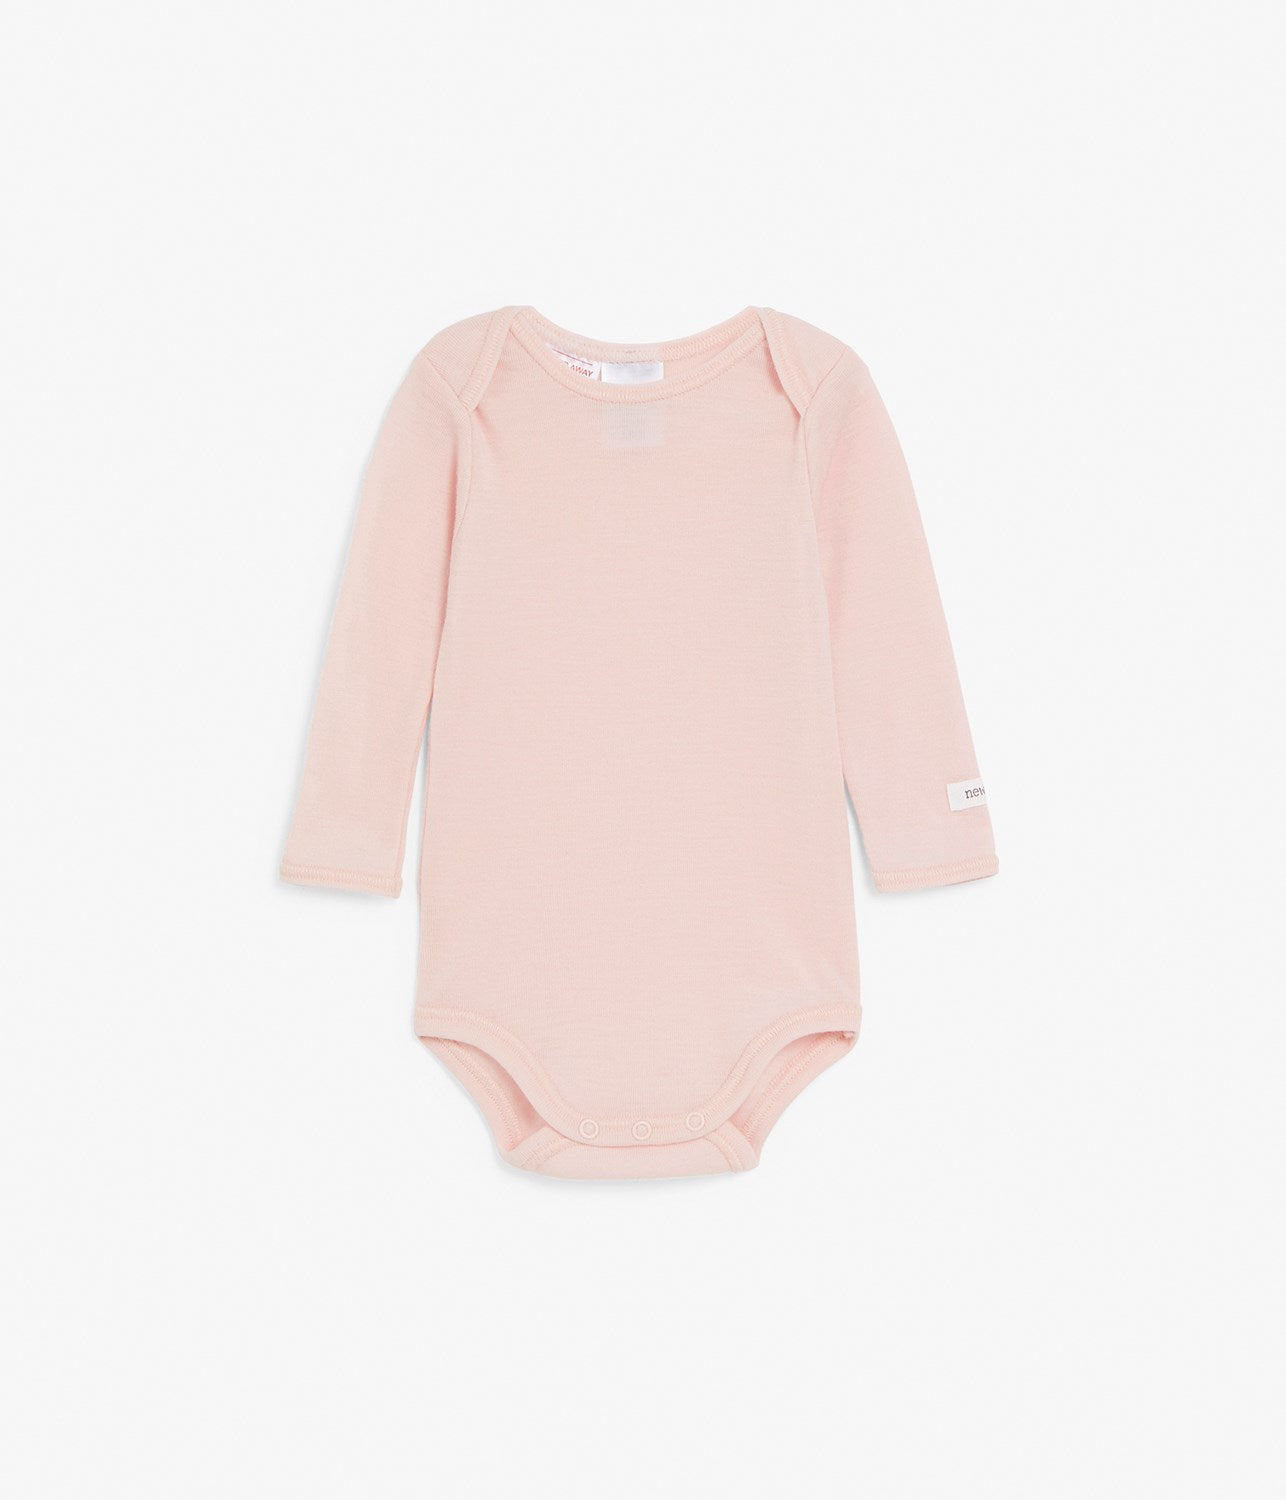 Baby wool thermal body